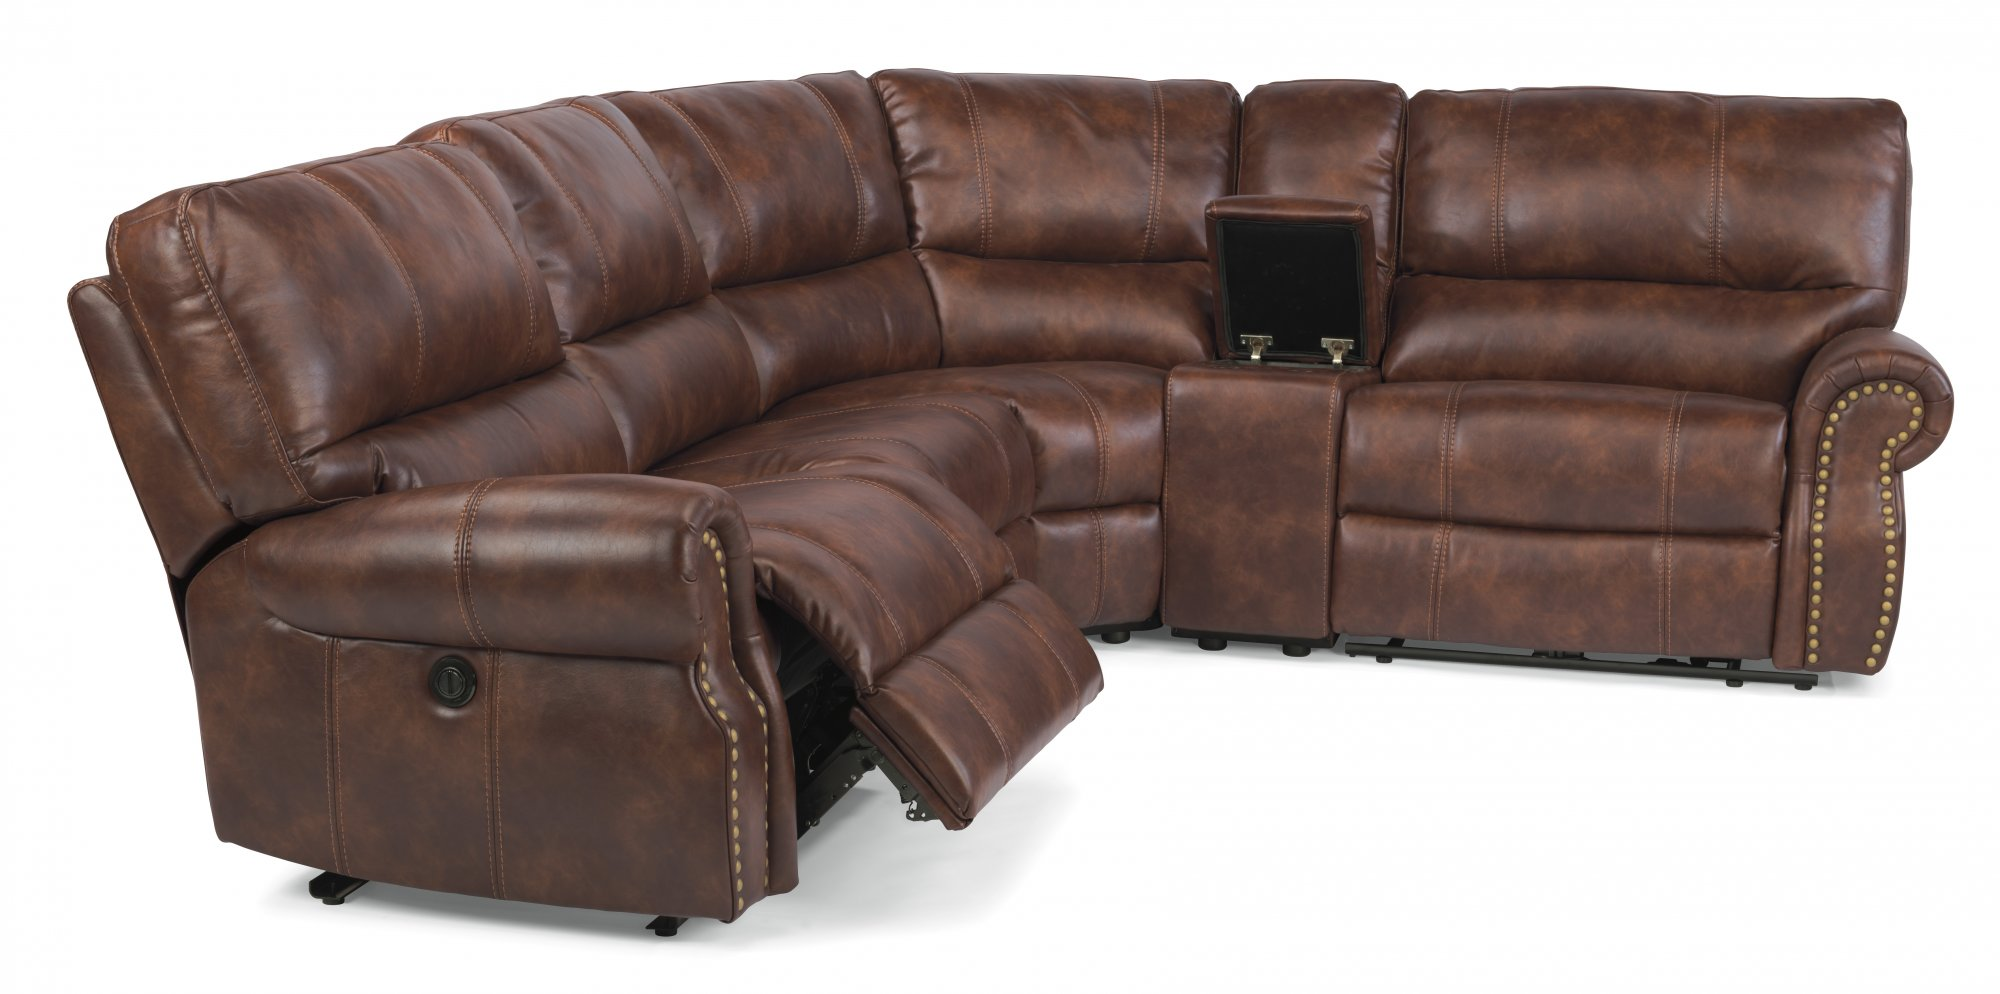 Fabric Power Reclining Sectional  sc 1 st  Flexsteel : brown reclining sectional - Sectionals, Sofas & Couches